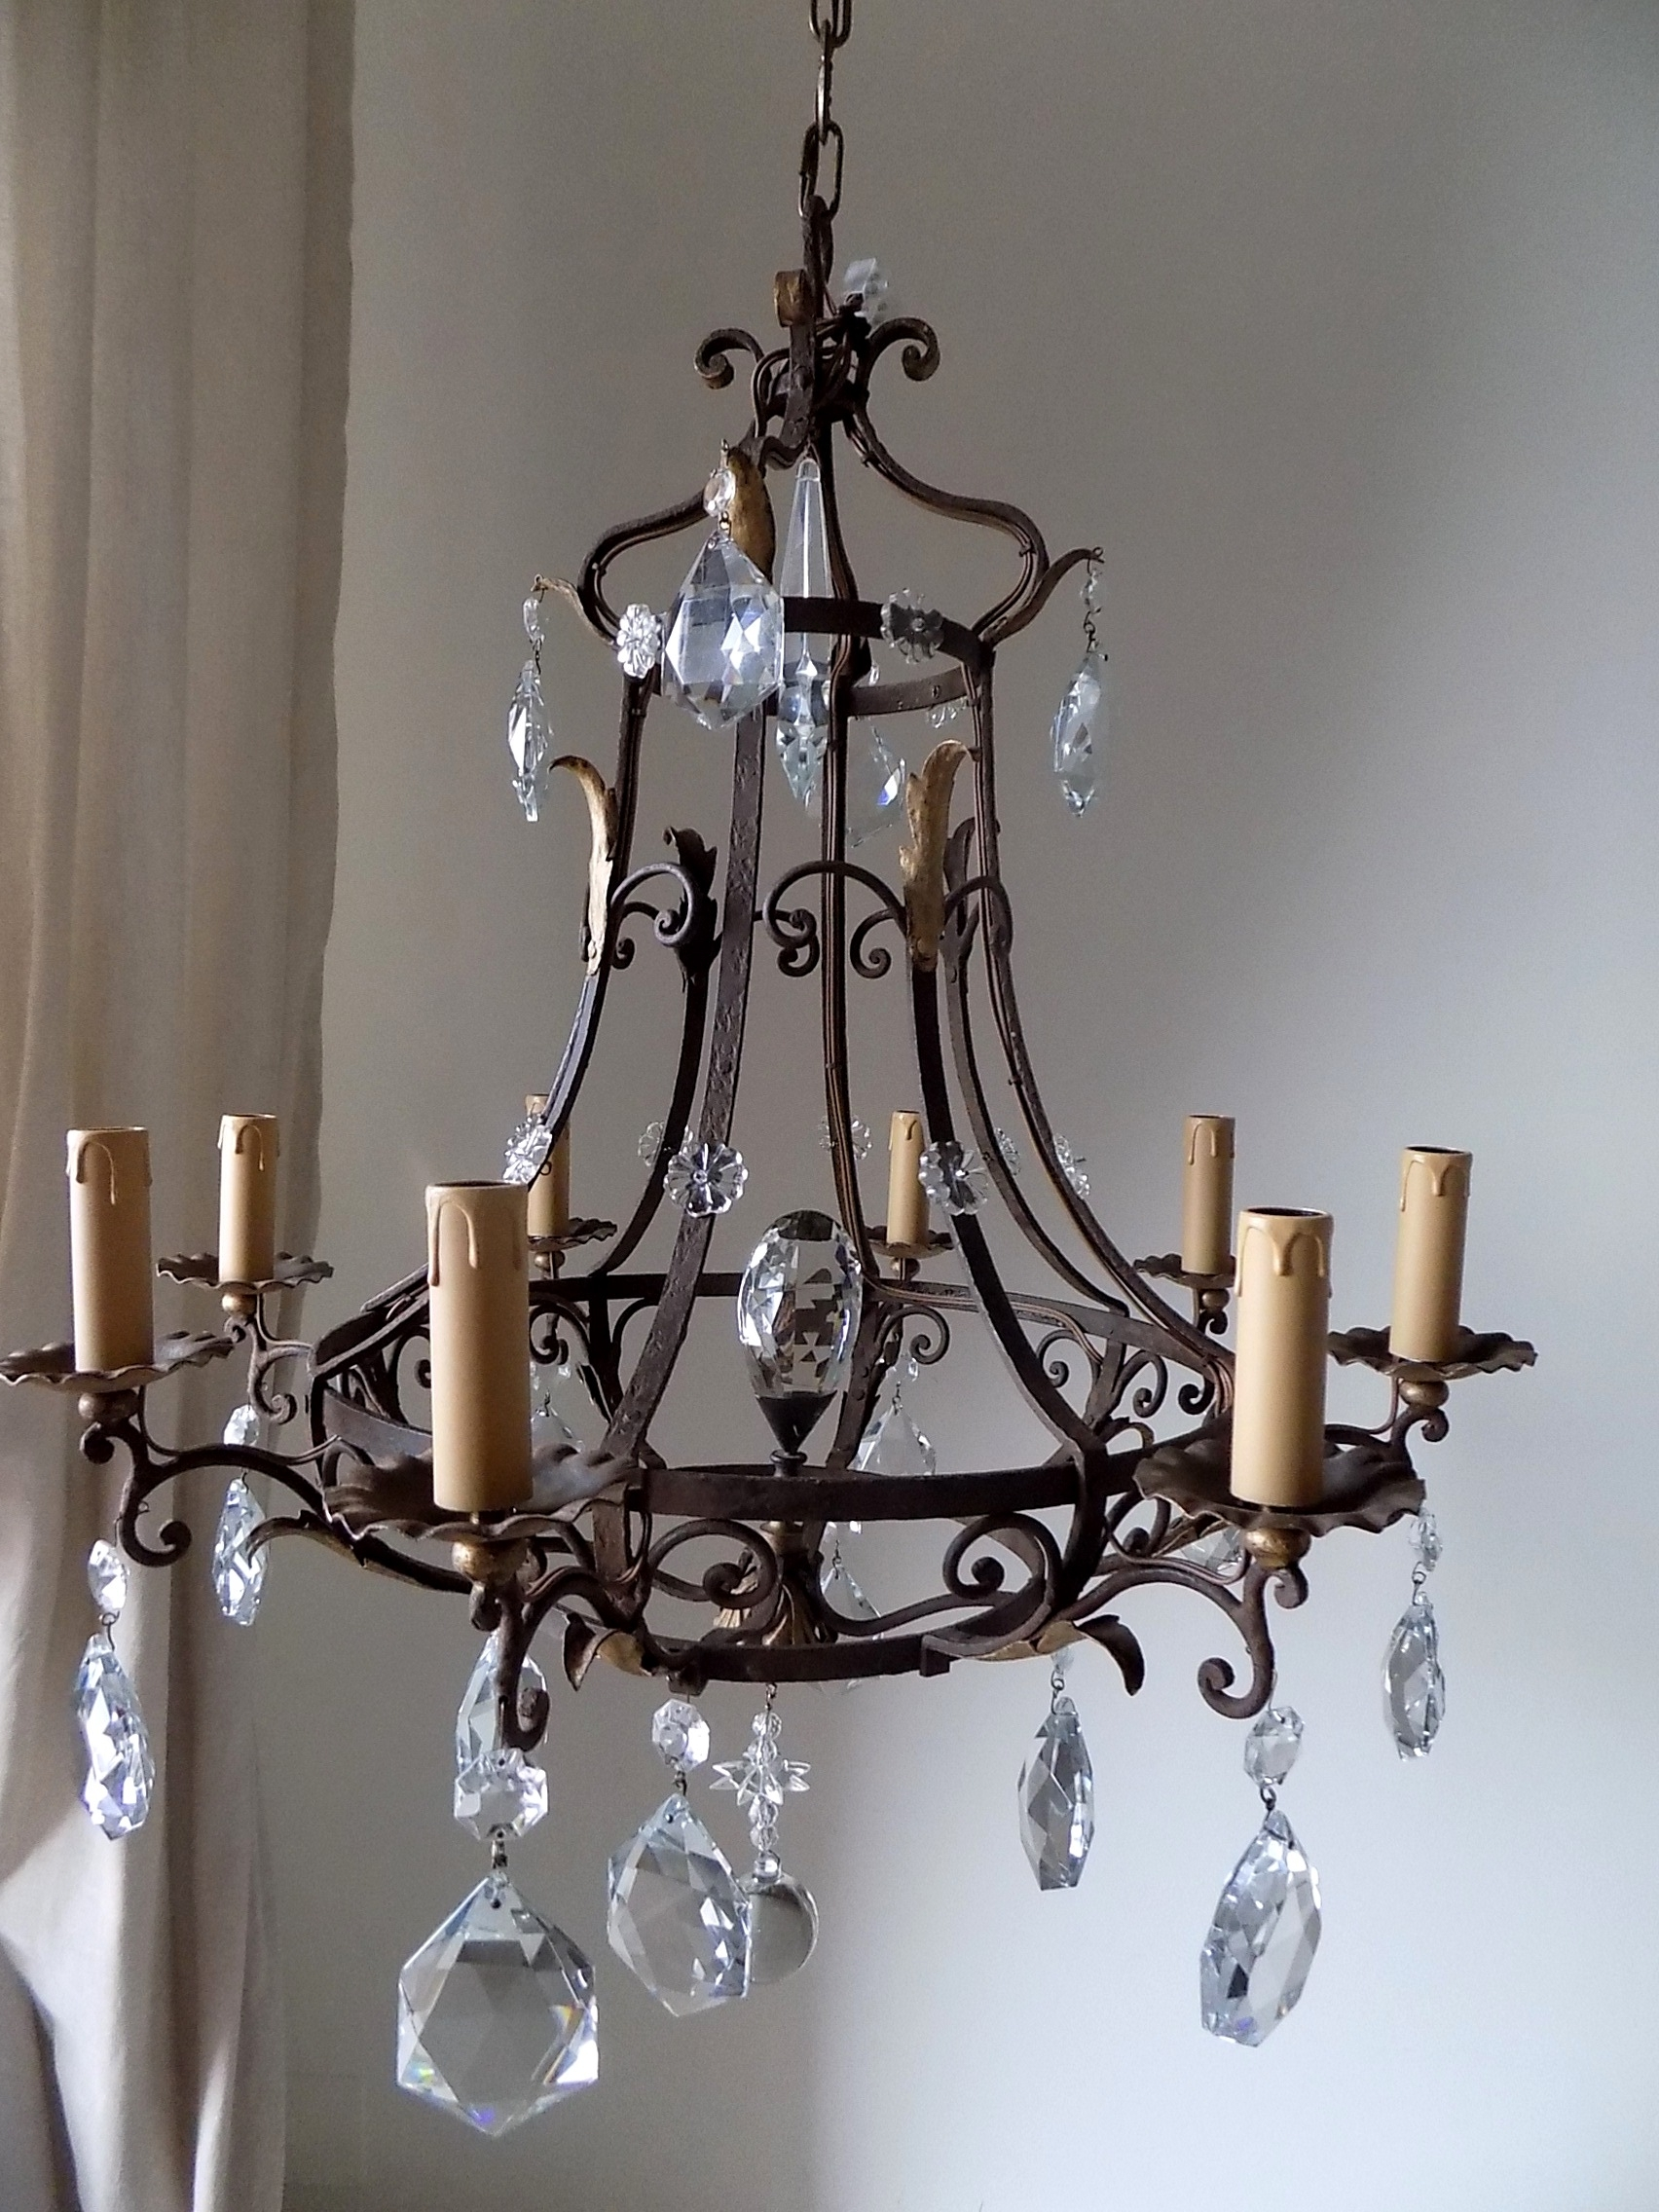 Famous Wrought Iron Chandeliers Intended For Antique French Massive Hand Forged Wrought Iron Chandelier – Lorella Dia (View 5 of 15)